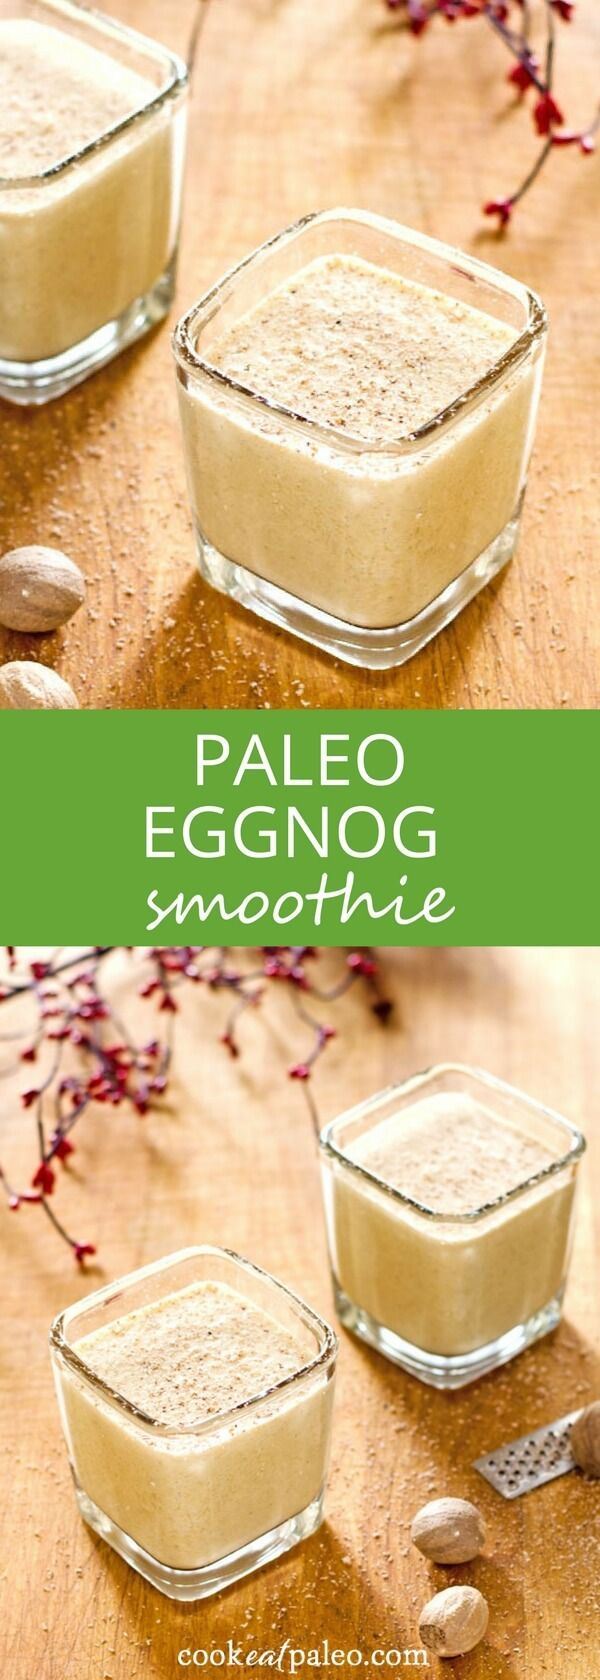 Eggnog protein shake - an easy paleo eggnog smoothie perfect for breakfast or a quick snack. Gluten-free, dairy-free, and refined sugar-free.